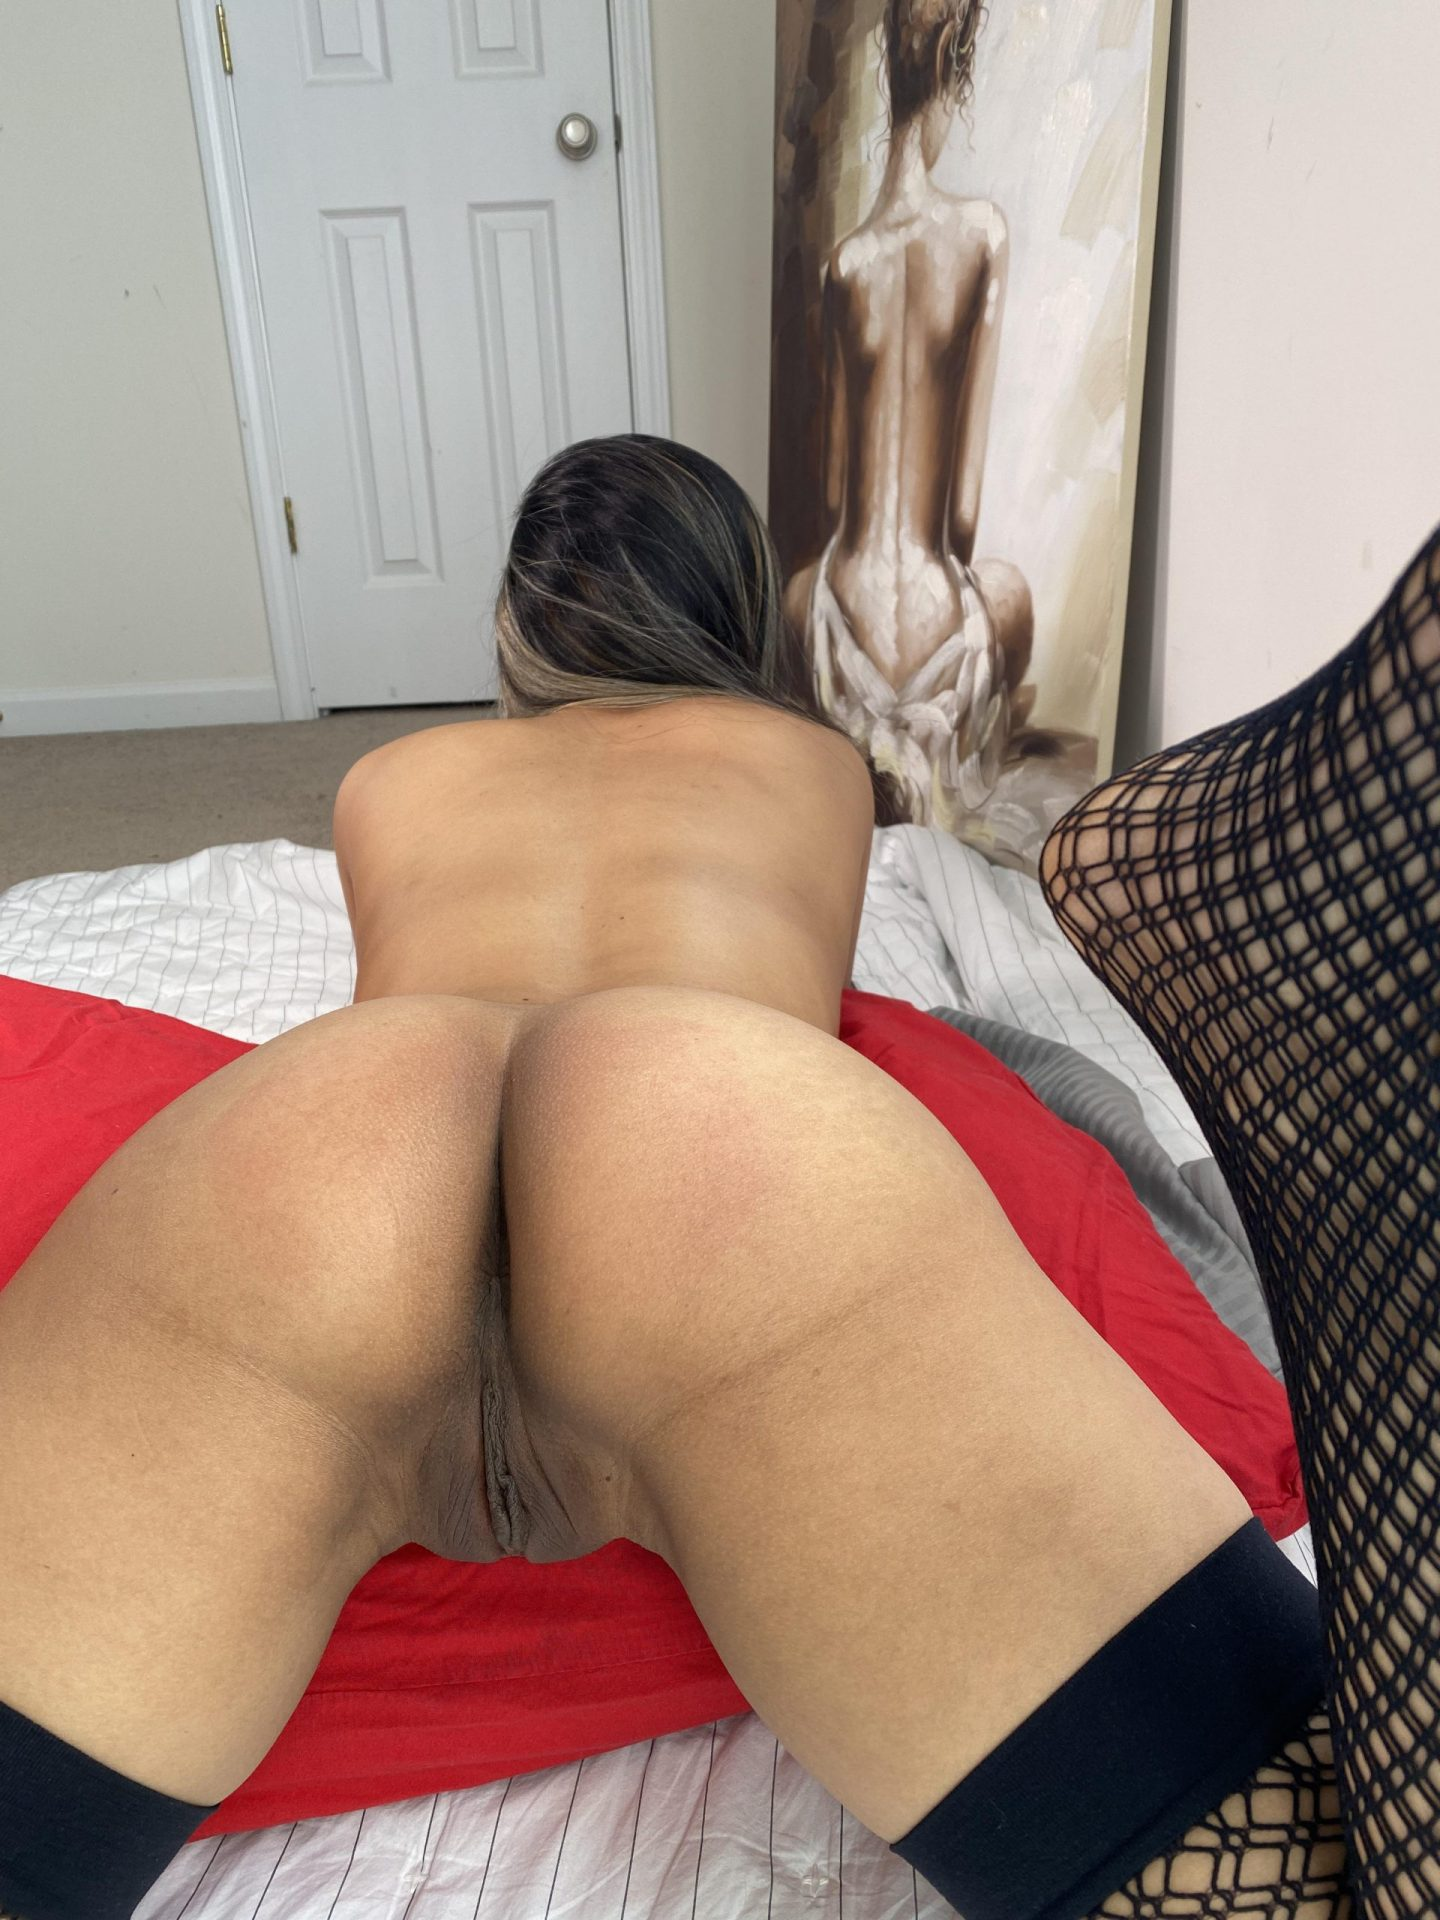 Would you fuck my juicy Thai ass?